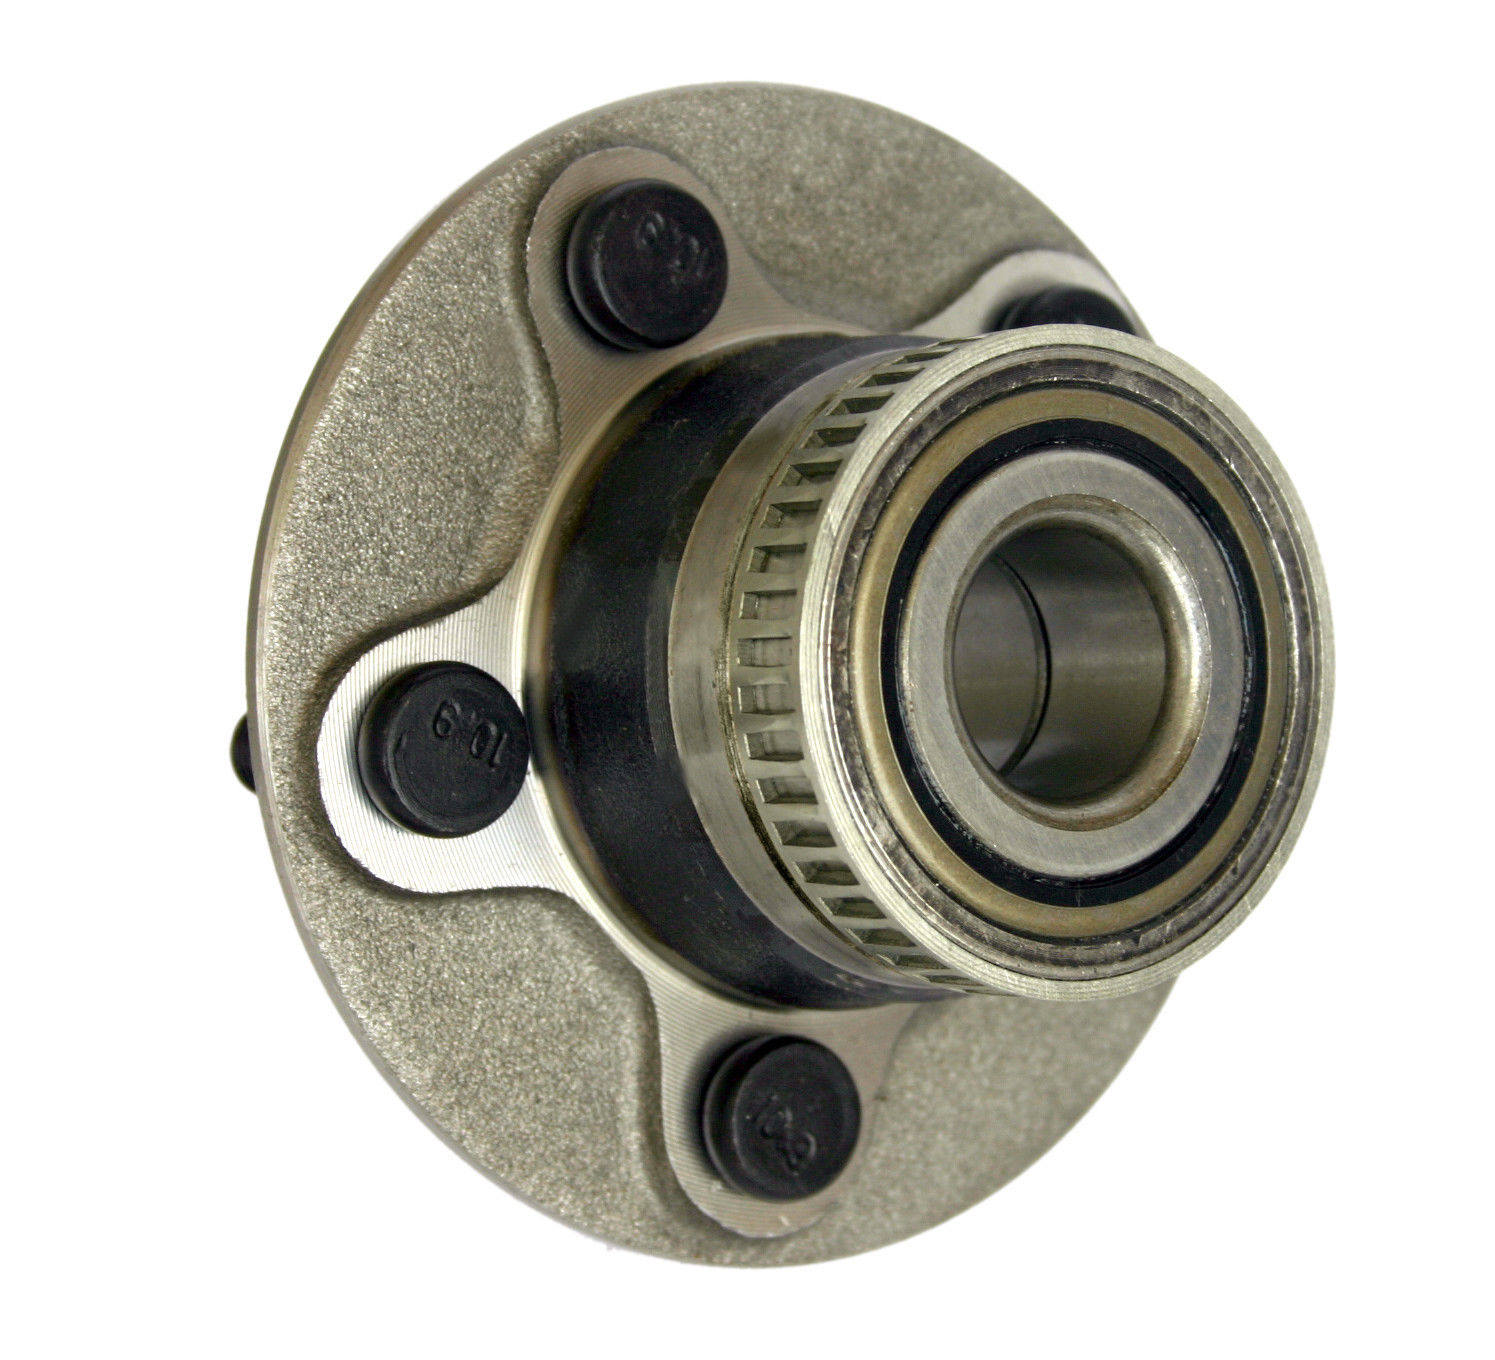 New Wheel Hub /& Bearing Rear Assembly Fits Dodge Neon PT Cruiser SX 2.0 W//ABS